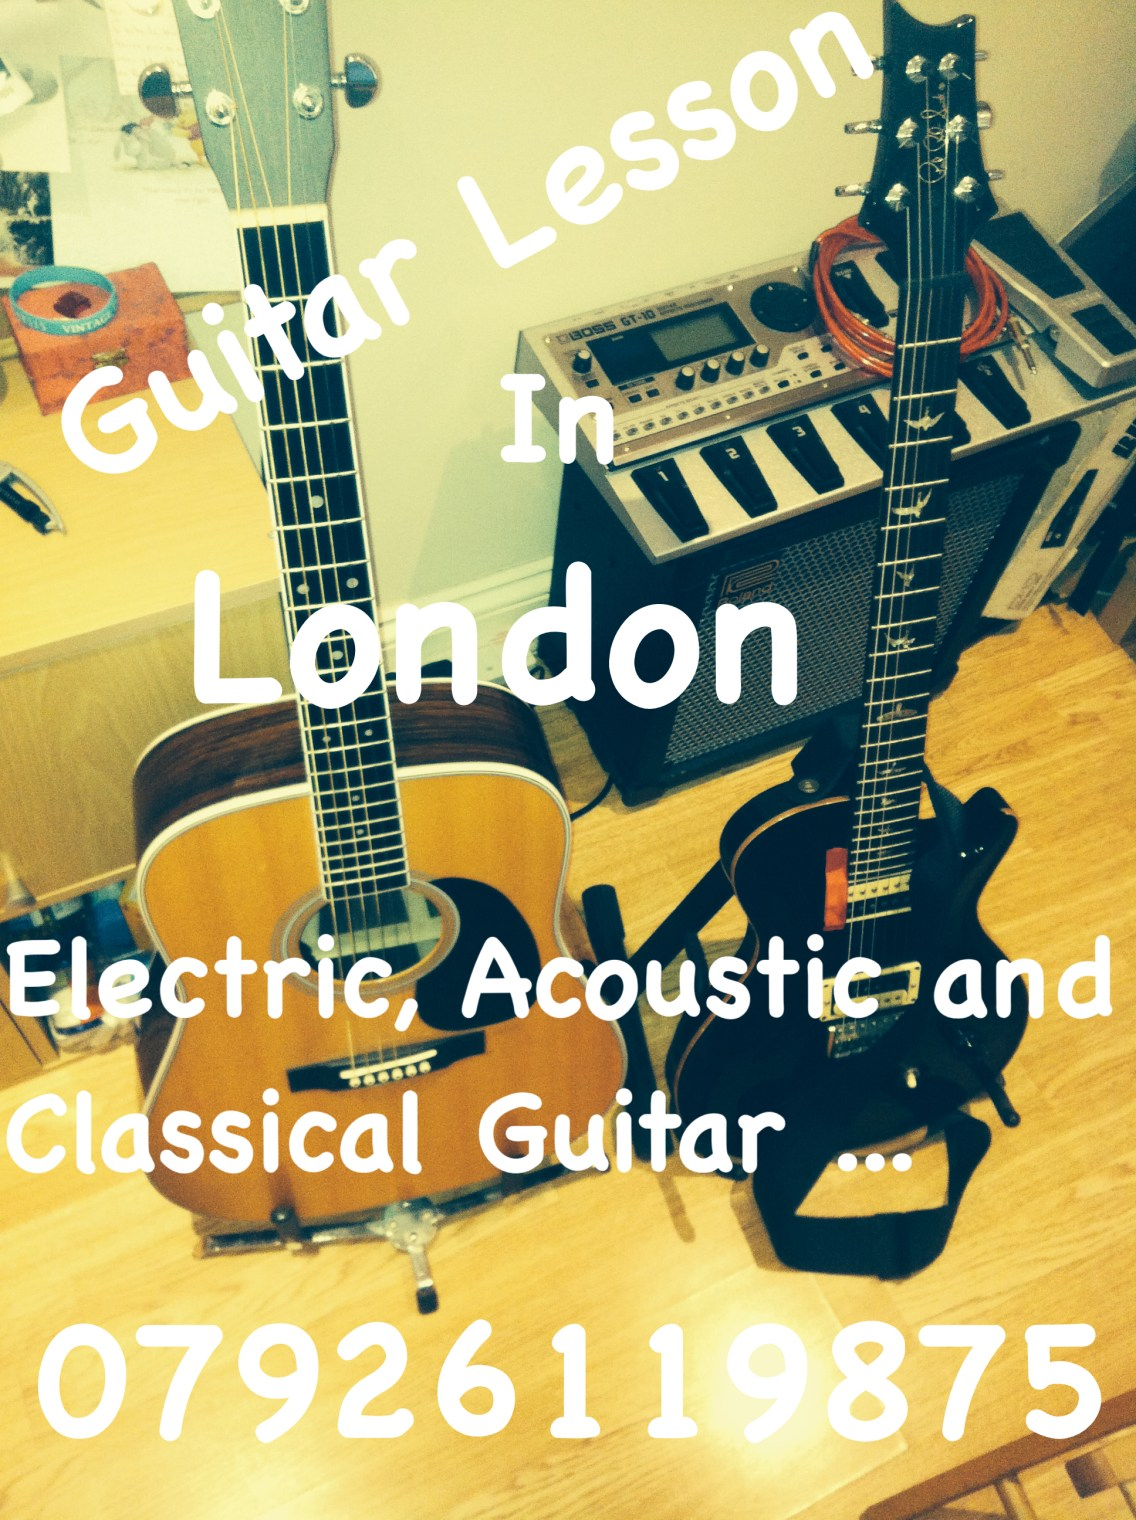 Learn Guitar in London - London Guitar Lesson - Acoustic, Electric and Classical Guitar Lesson in London. Courses organized by Marco Cirillo.